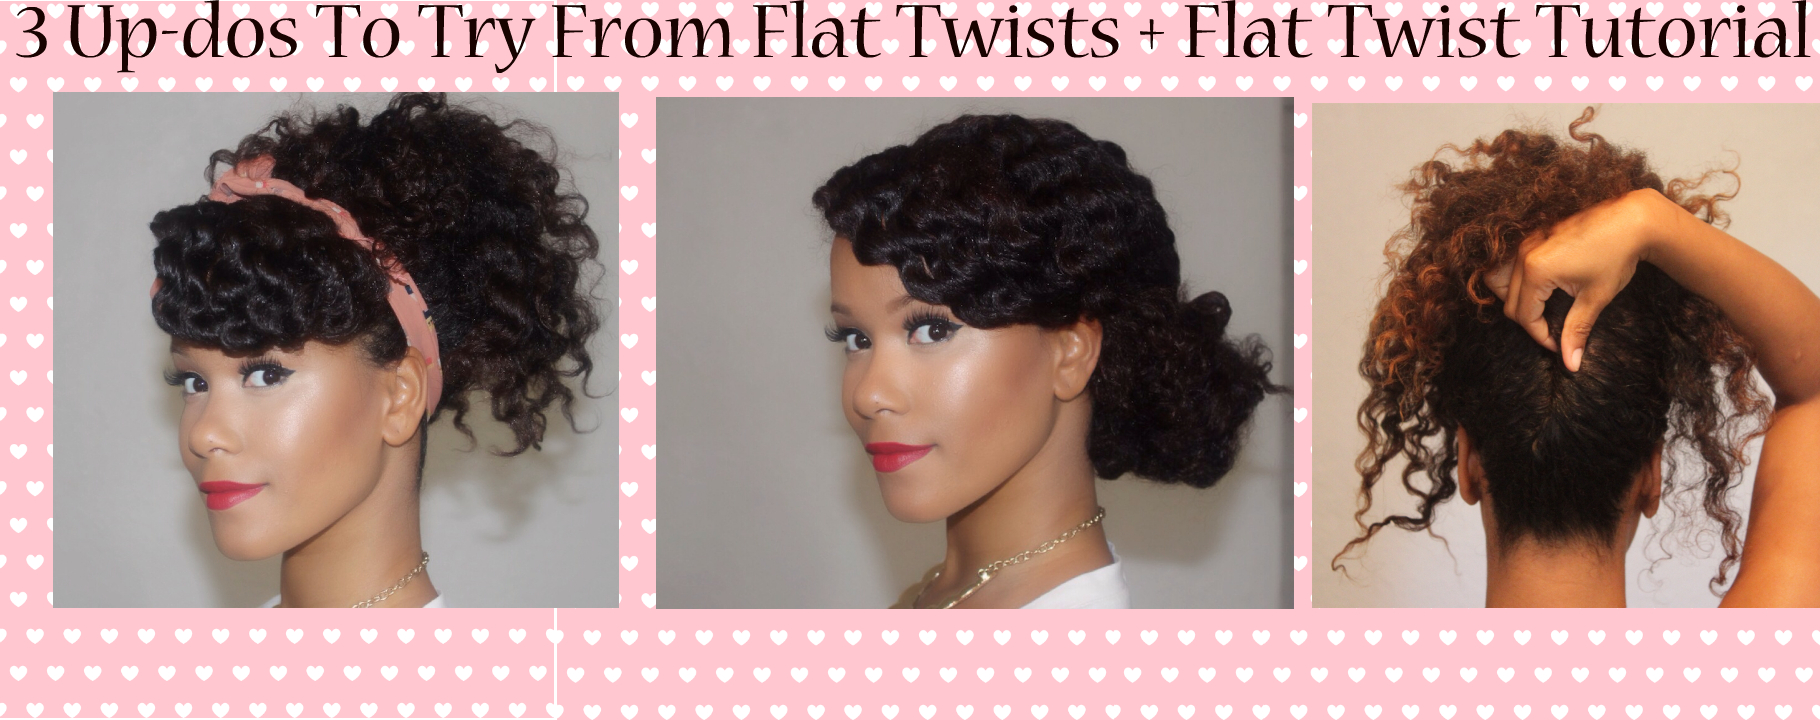 Magnificent Natural Hair Styles Global Couture Blog Short Hairstyles For Black Women Fulllsitofus